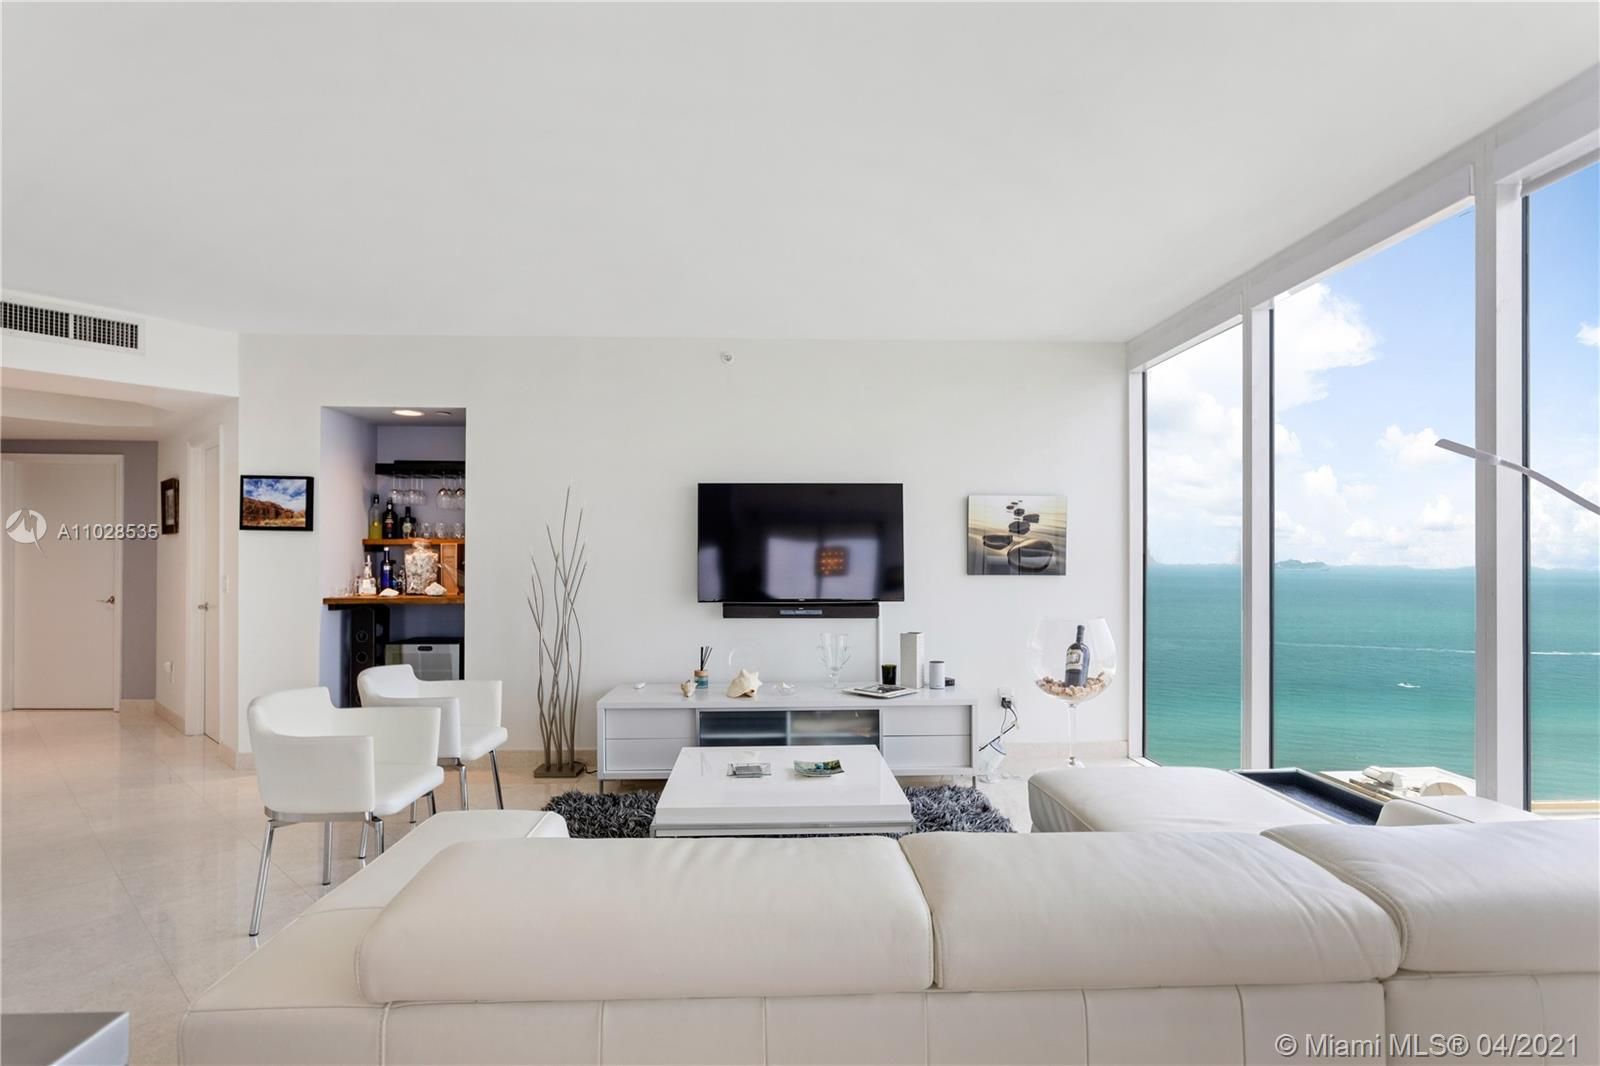 Located in one of the most desirable lines in the building, this southwest corner residence offers 2 bedrooms & 2 baths. Highlighting the home are gorgeous panoramic views of the ocean, bay & Miami skyline. The main bedroom is complete with a spacious custom-built, walk-in closet and a large bath outfitted with double sinks  Jacuzzi & separate shower. Other features include electric shades, modern lighting fixtures, beautiful floors throughout, large wrap-around balcony & exquisite details throughout this residence. The Green Diamond is a luxury Miami Beach condo situated on the ocean, offering extraordinary amenities & services.